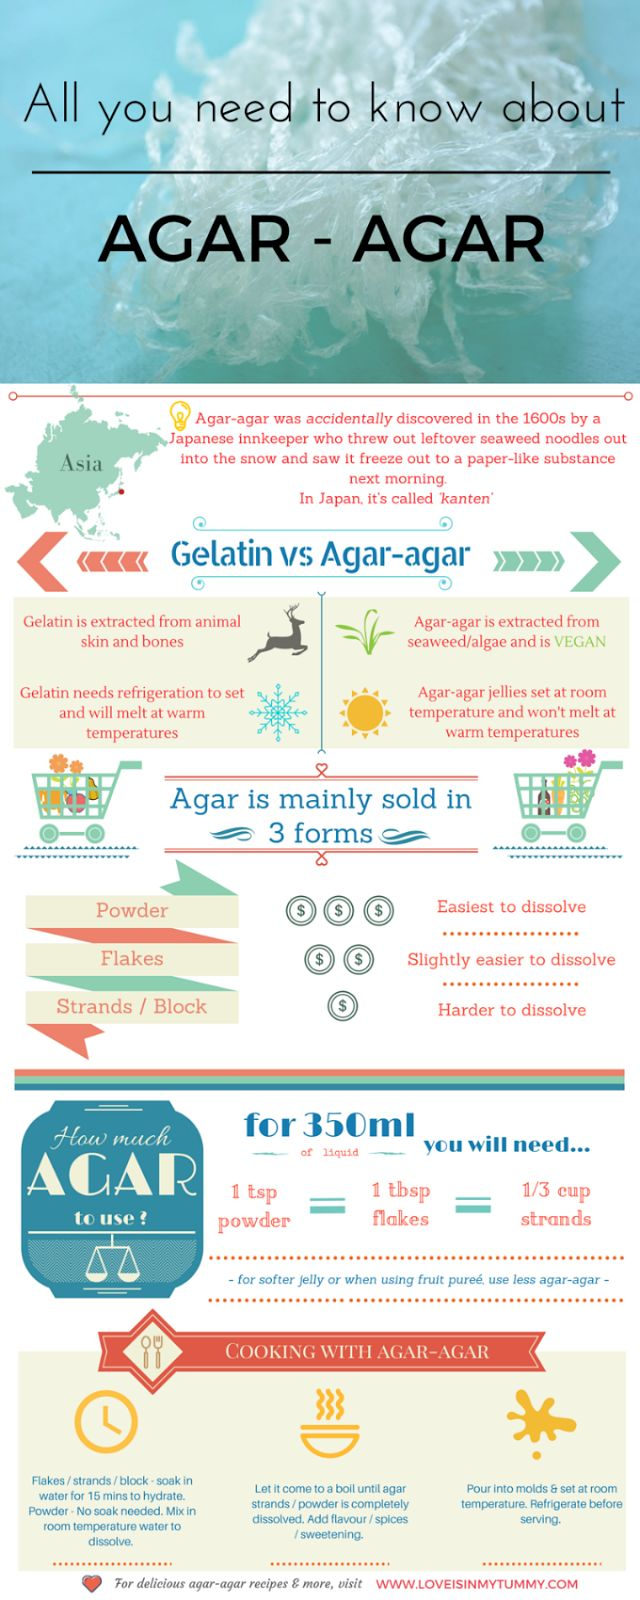 All you need to know about Agar Agar is in this infographic - Head over to the blog for more detailed information and make yourself something delicious - vegan friendly!